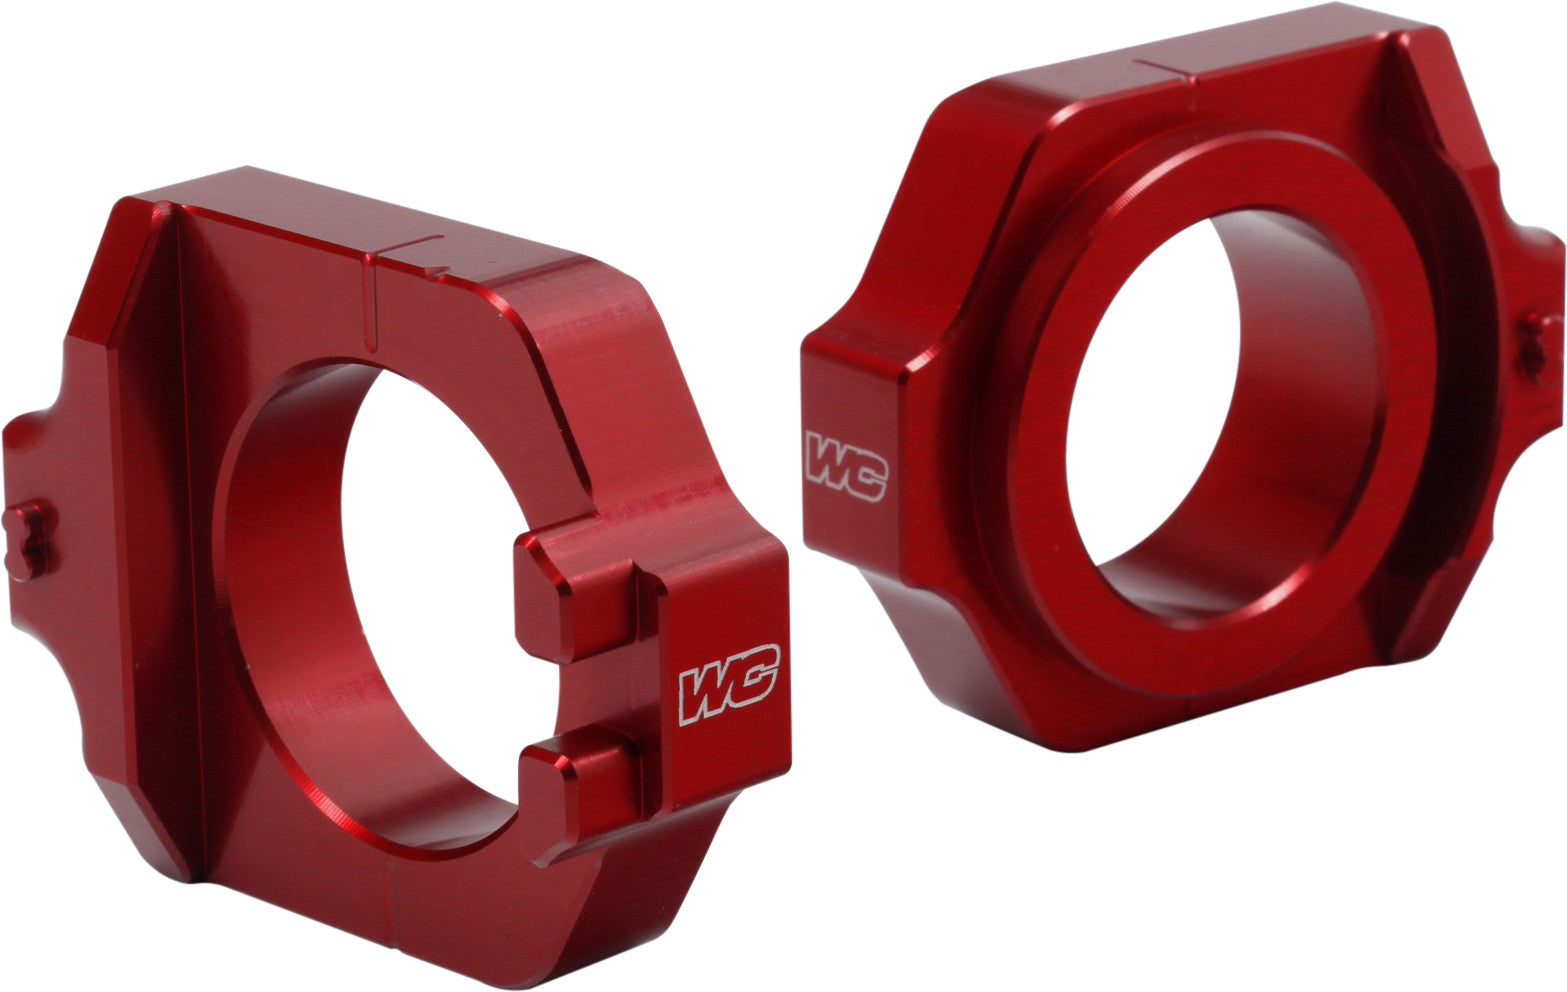 AXLE BLOCKS ELITE HON RED Works Connection 17-205